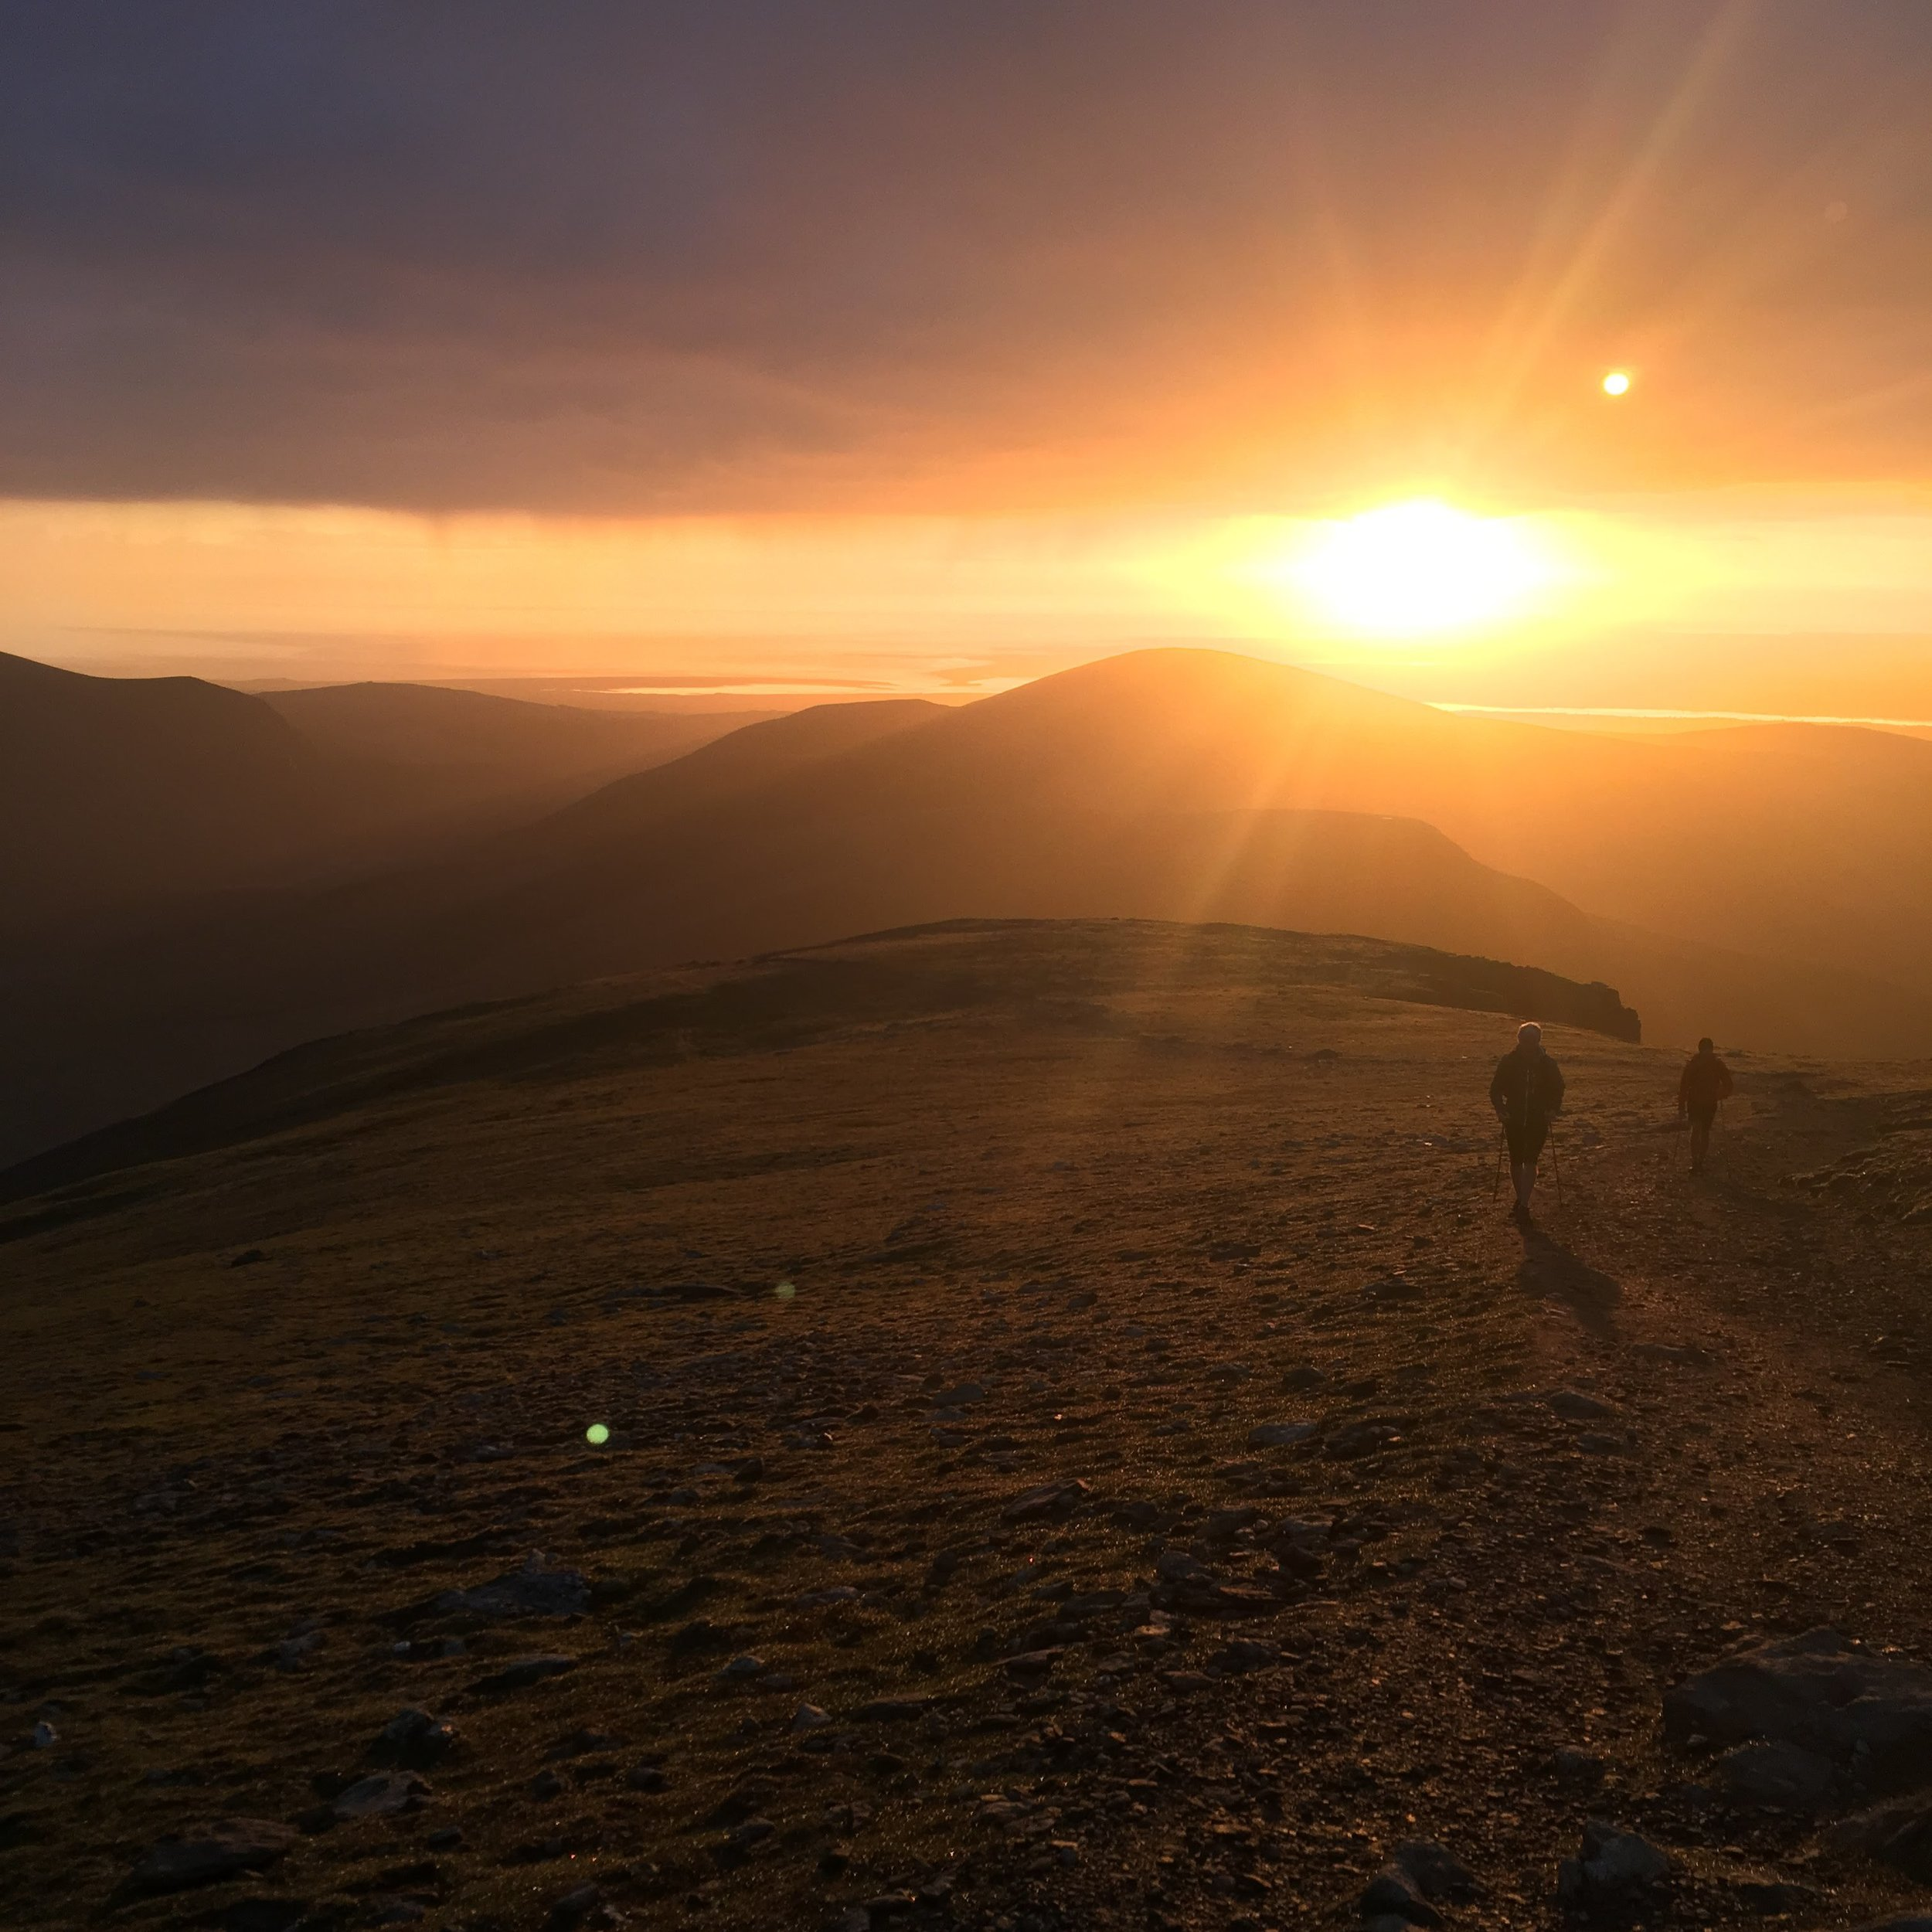 Going up Snowdon (again) and into the second night